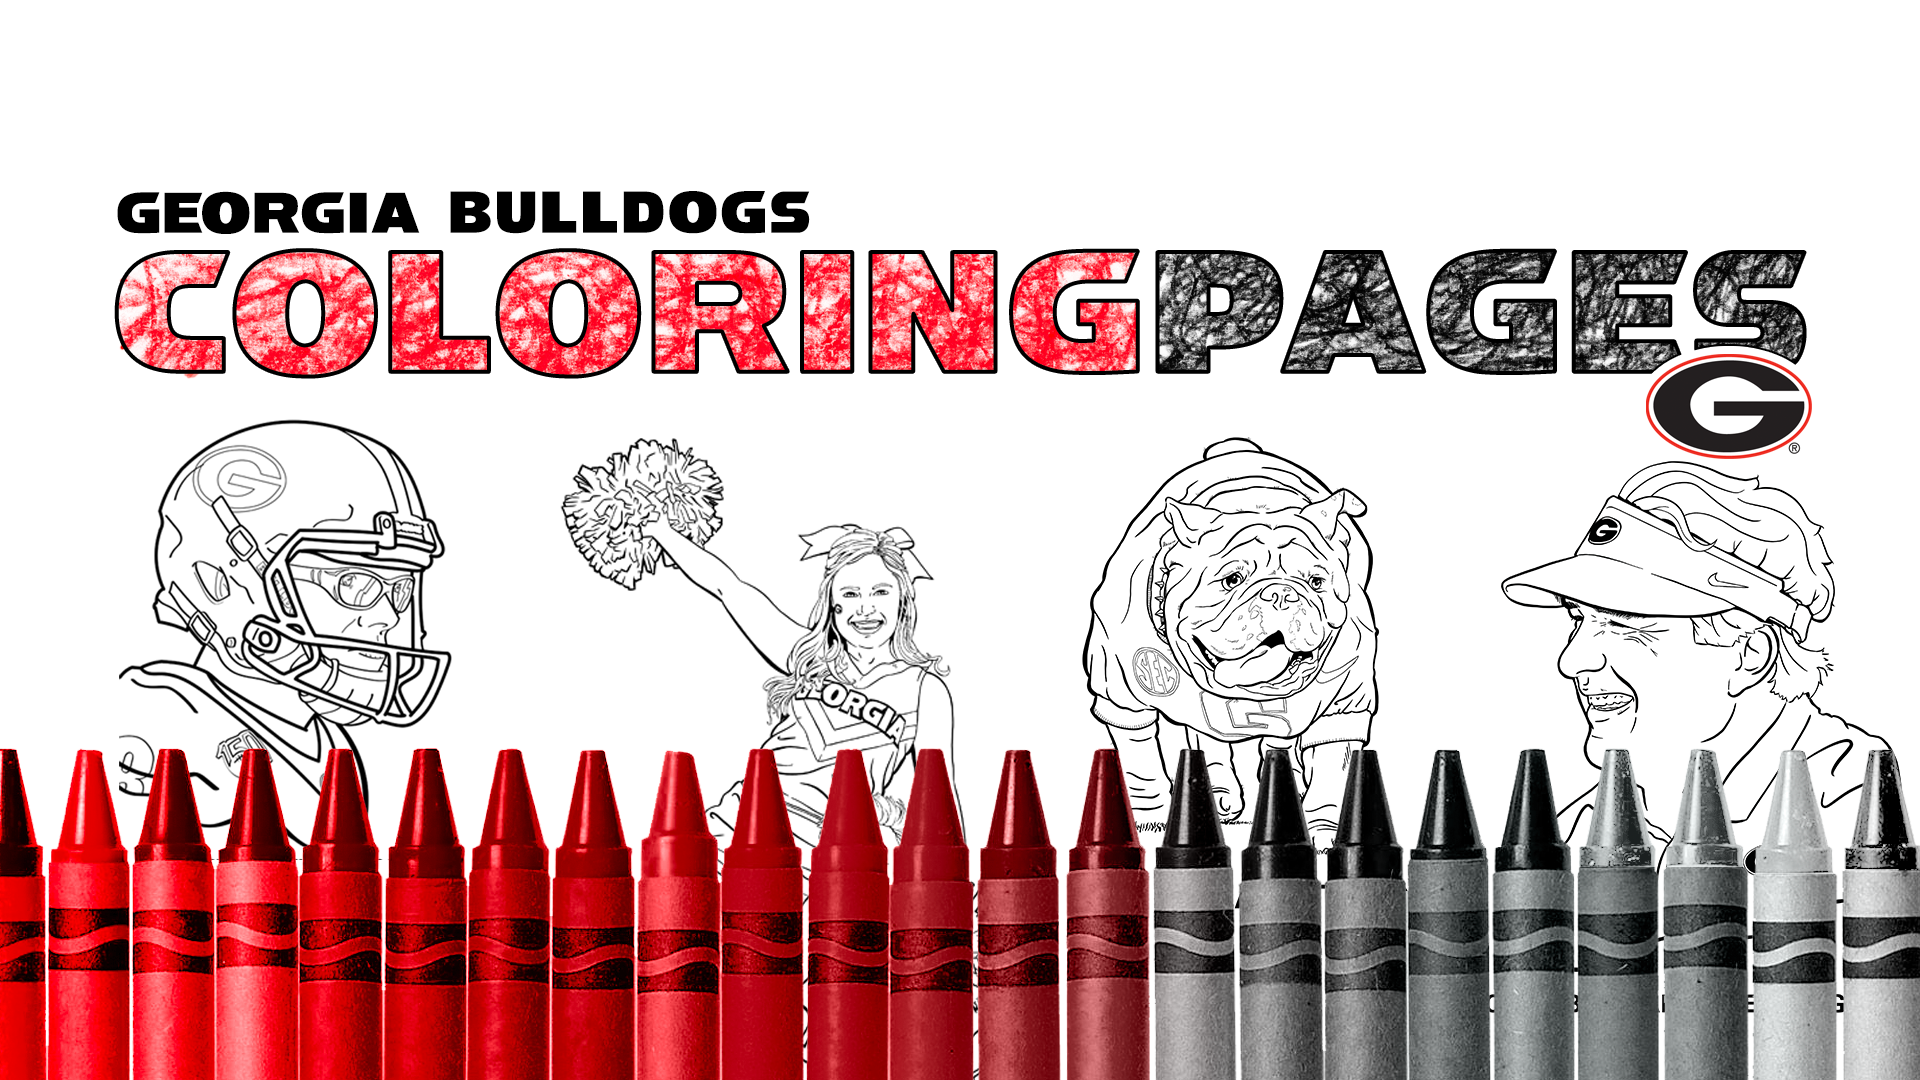 - Georgia Bulldogs Coloring Pages - University Of Georgia Athletics